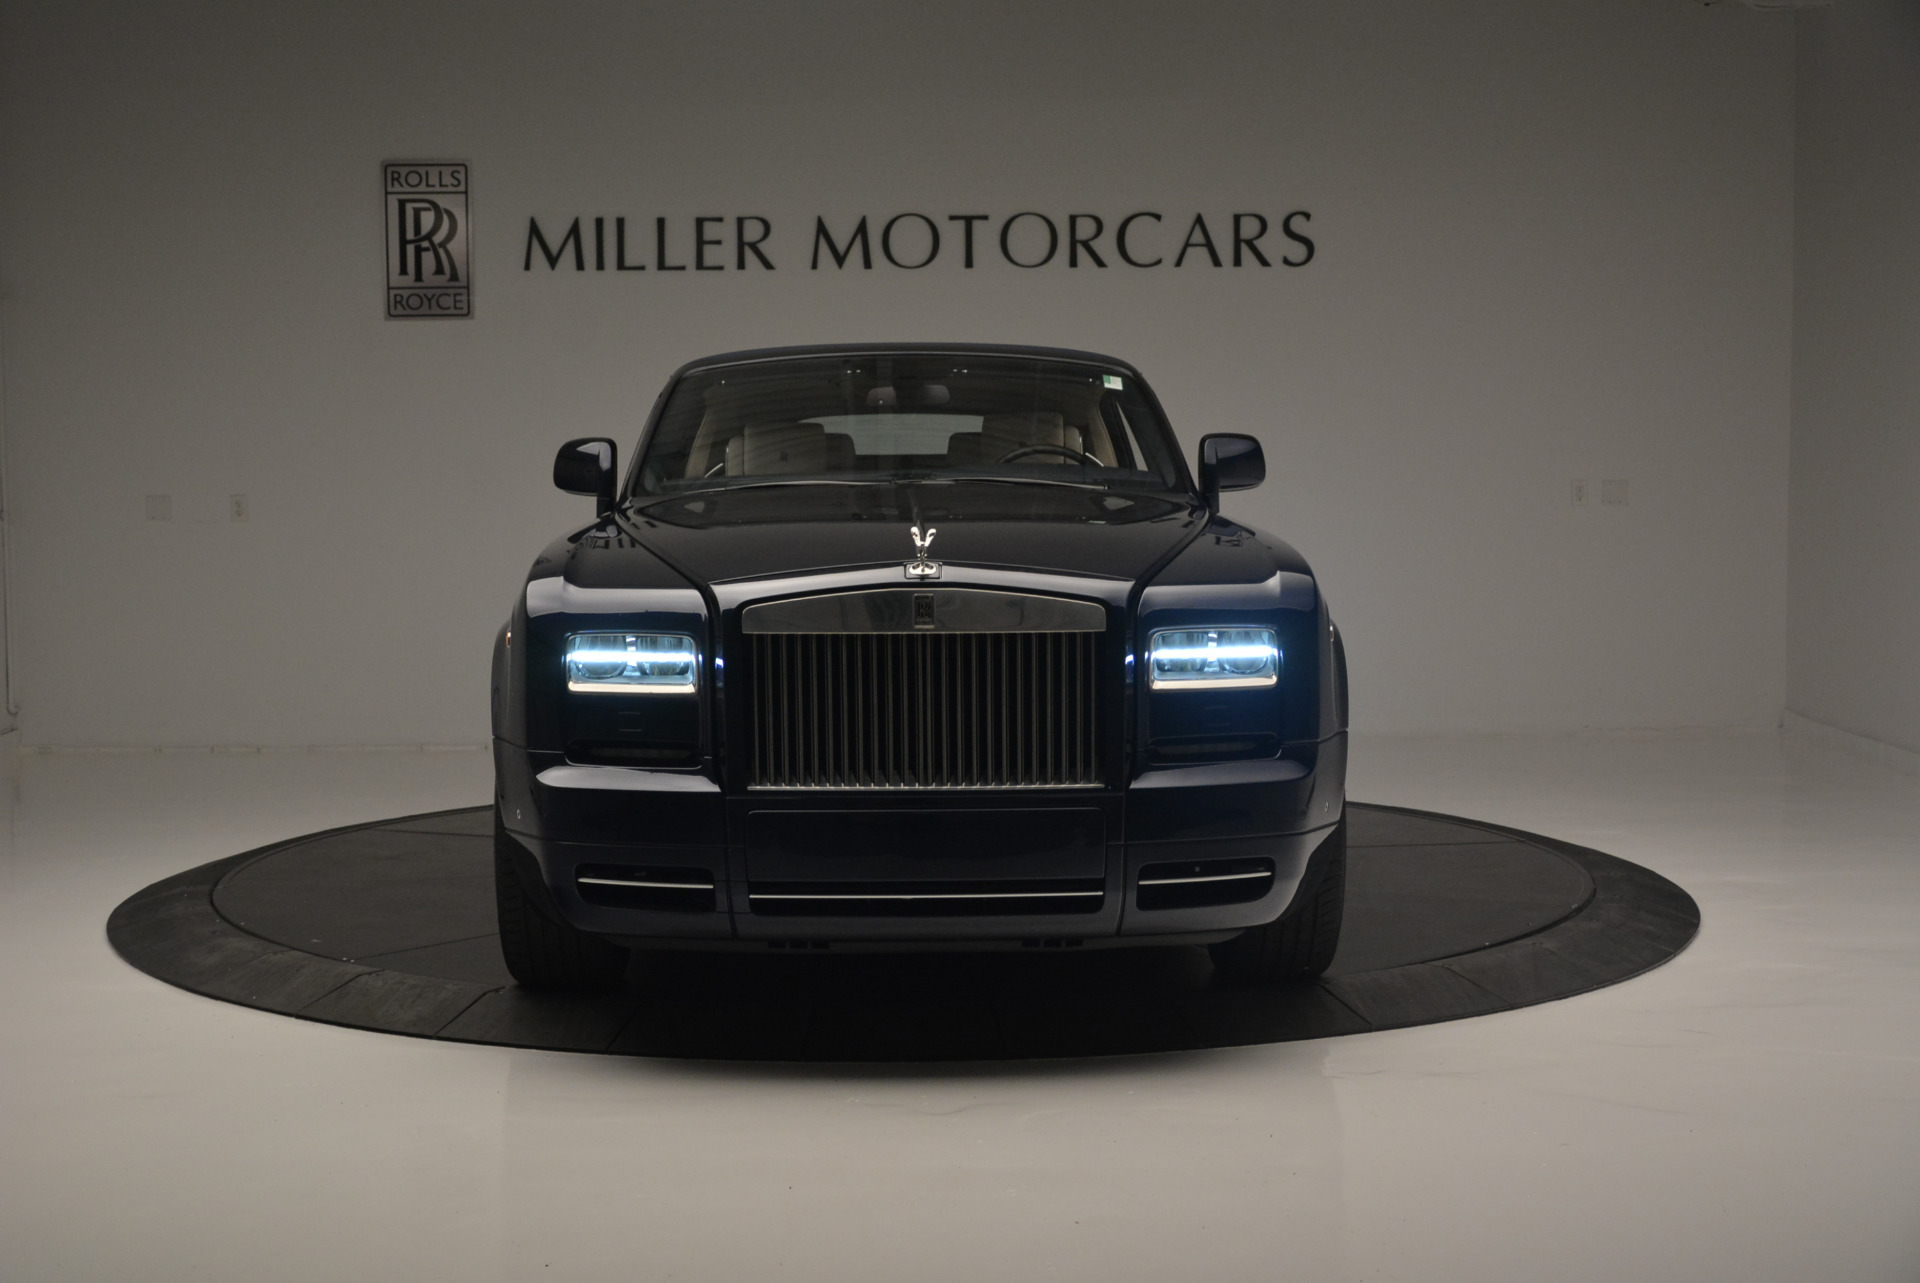 Used 2014 Rolls-Royce Phantom Drophead Coupe  For Sale In Greenwich, CT. Alfa Romeo of Greenwich, 7644 2356_p16